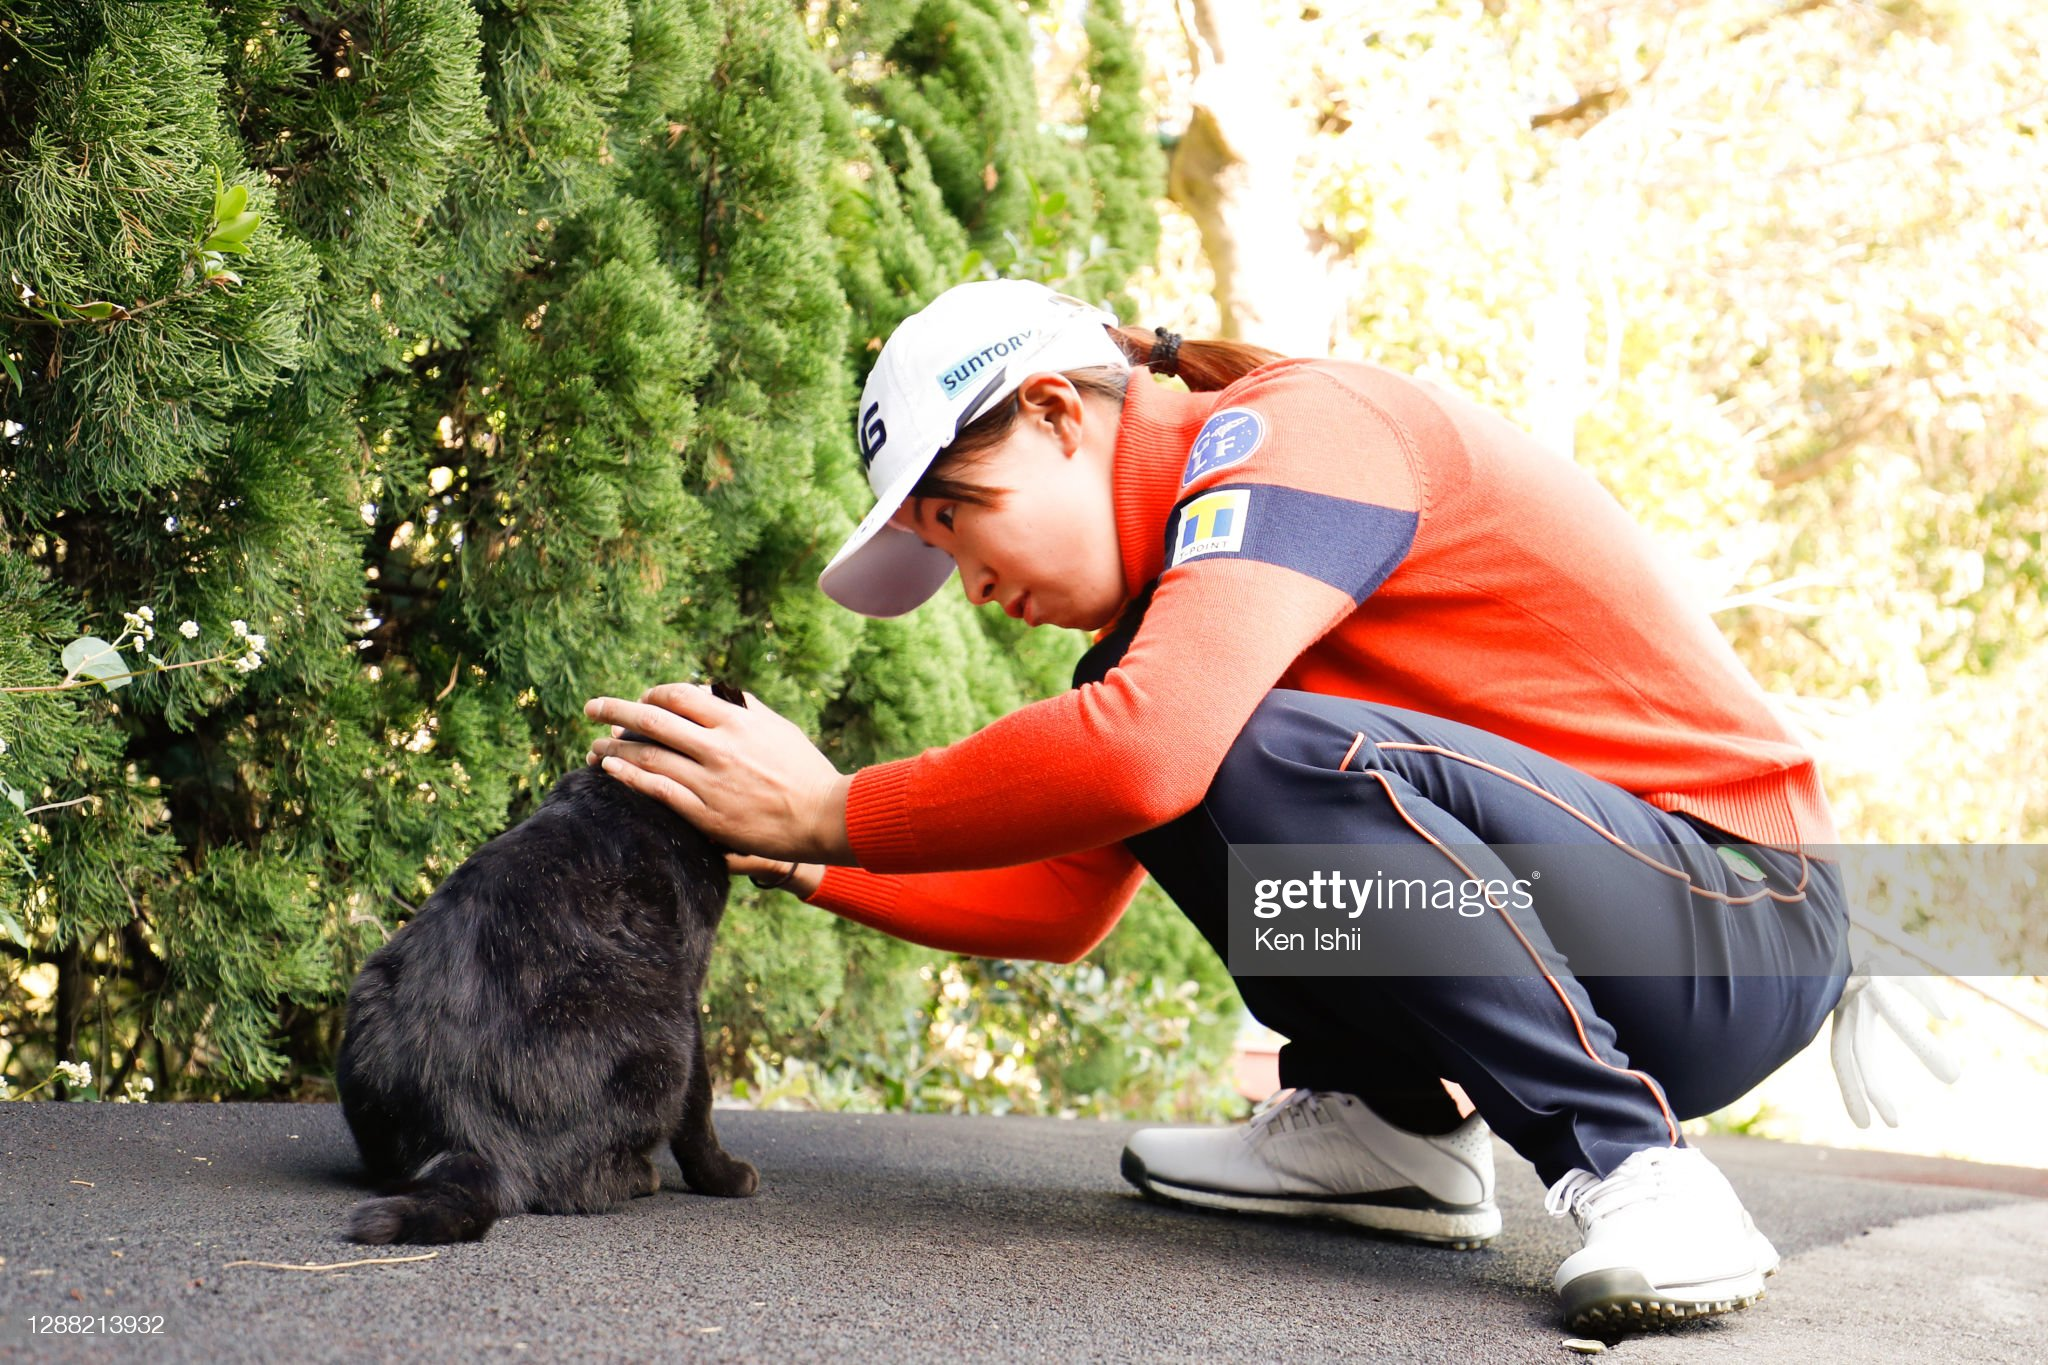 https://media.gettyimages.com/photos/hinako-shibuno-of-japan-plays-with-a-black-cat-after-the-third-round-picture-id1288213932?s=2048x2048